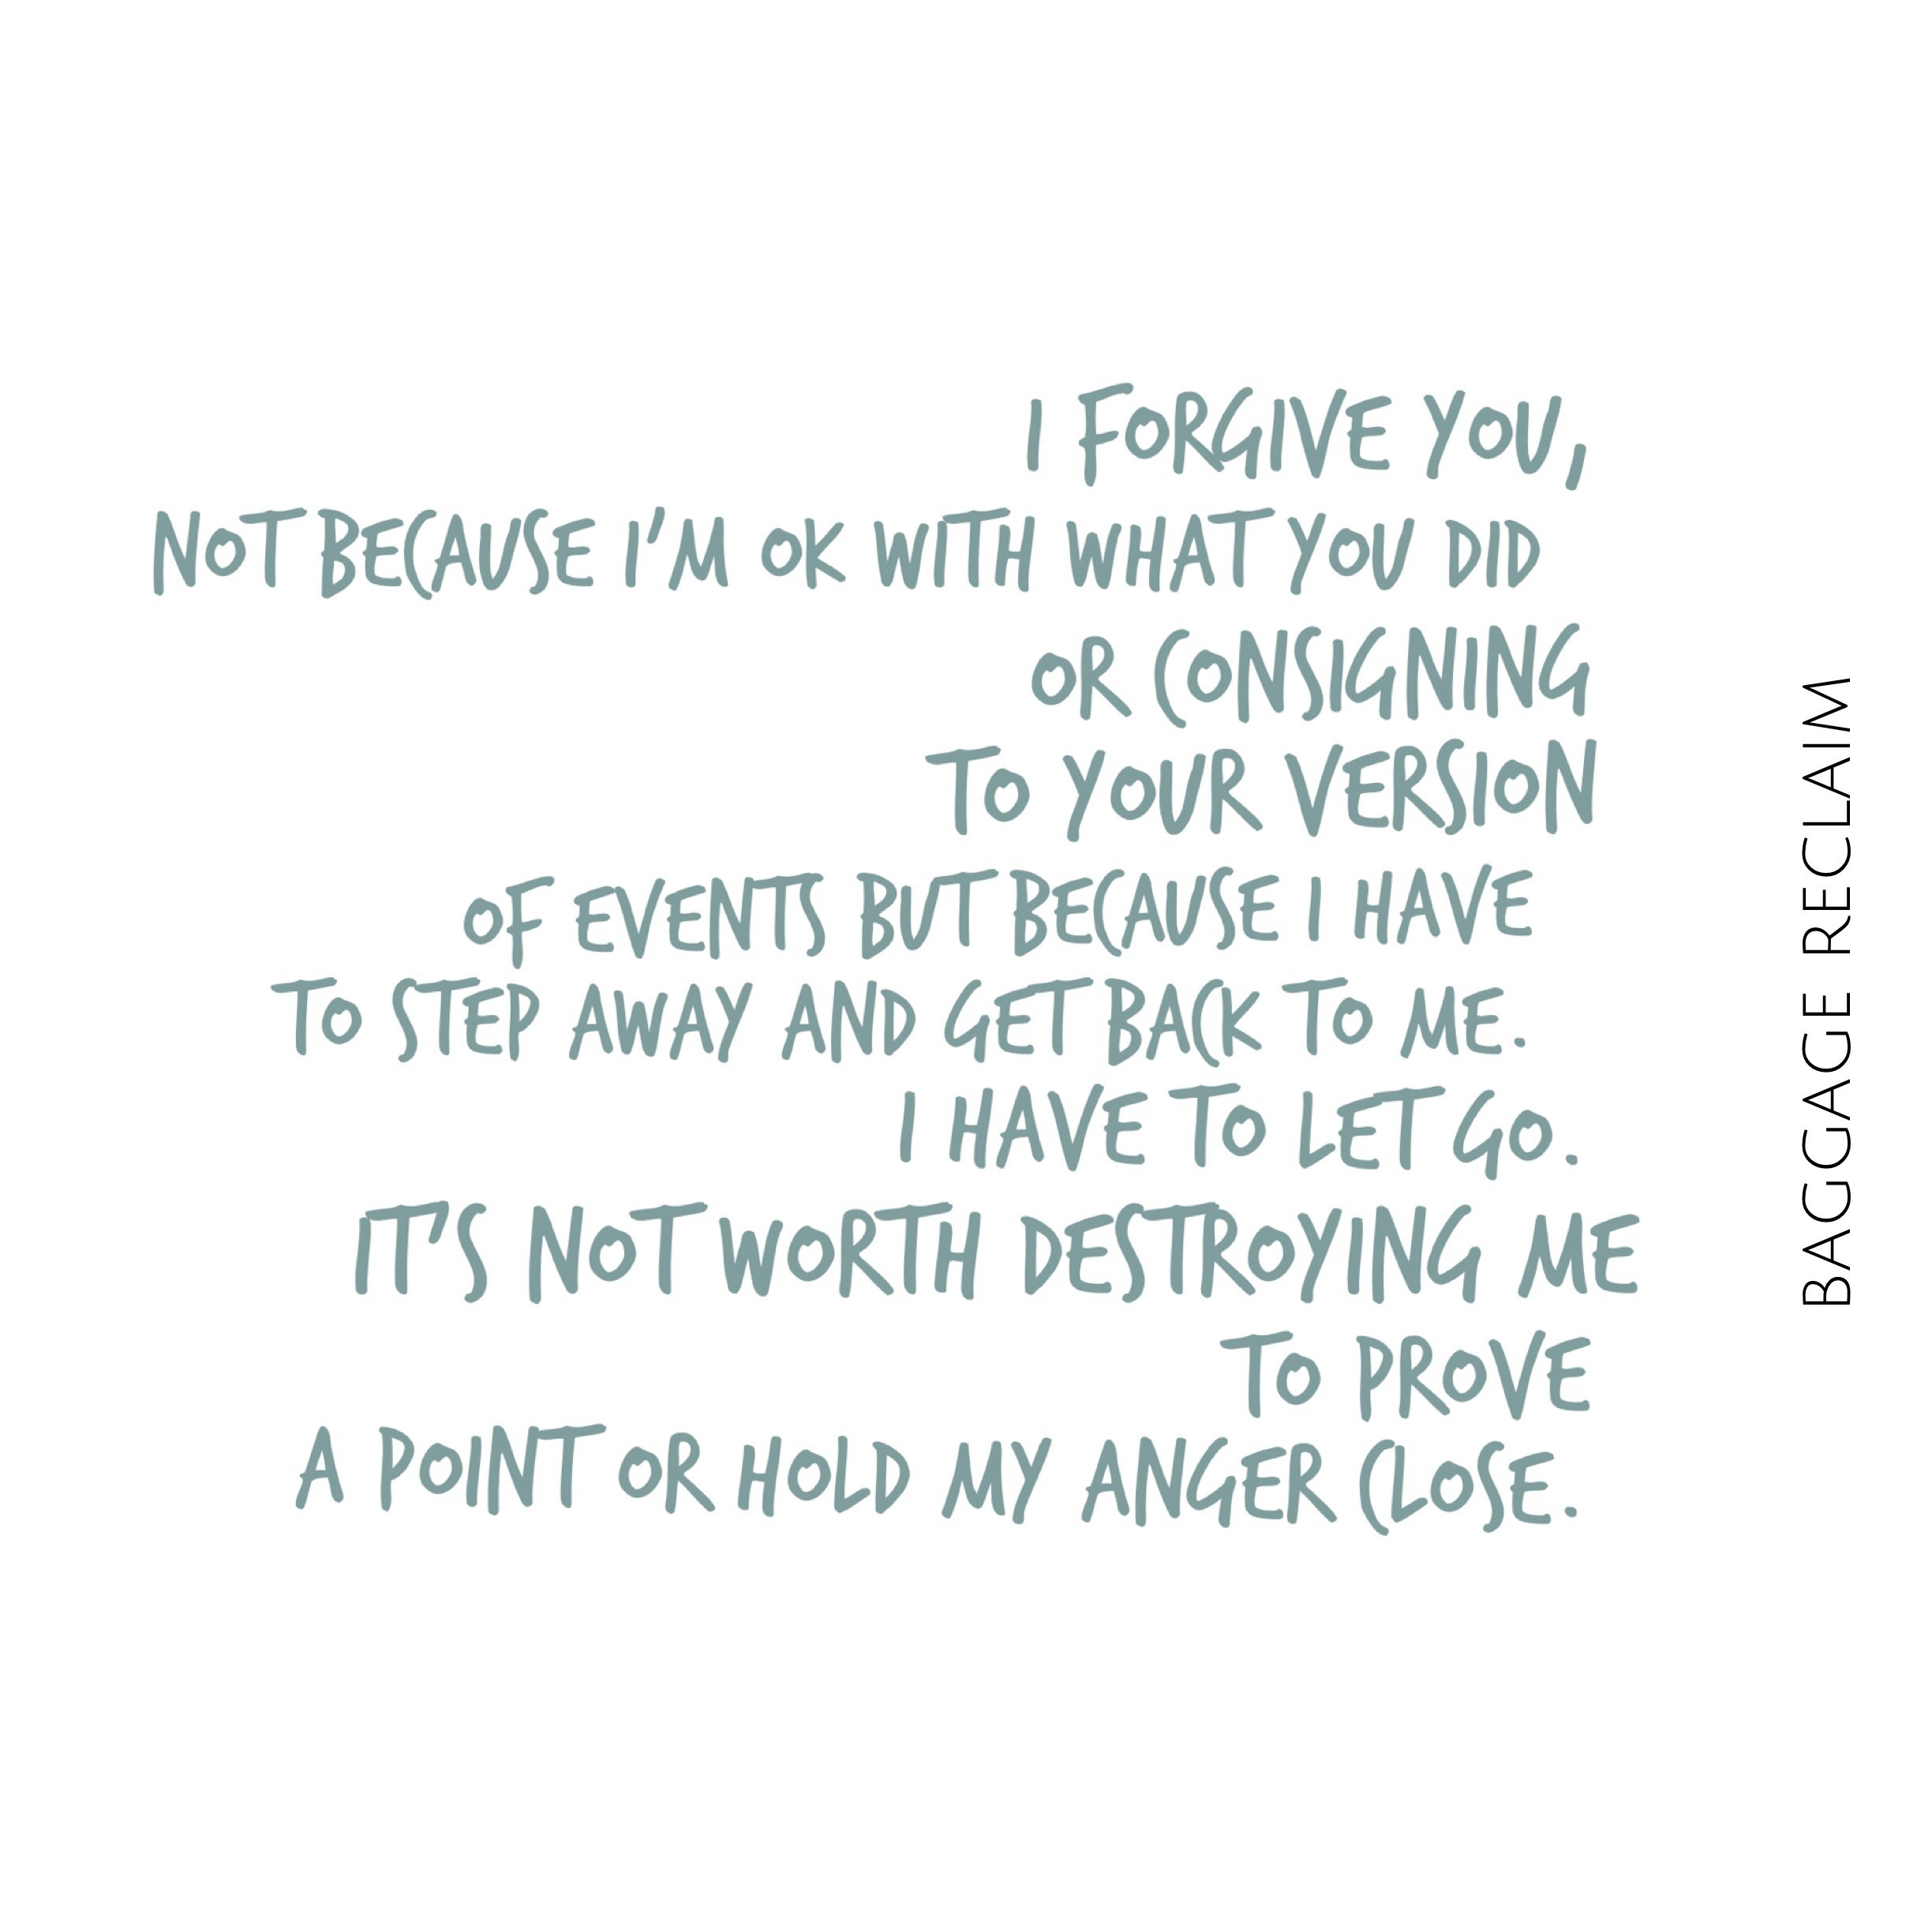 Forgiveness isn't about agreeing with or condoning the other person's actions